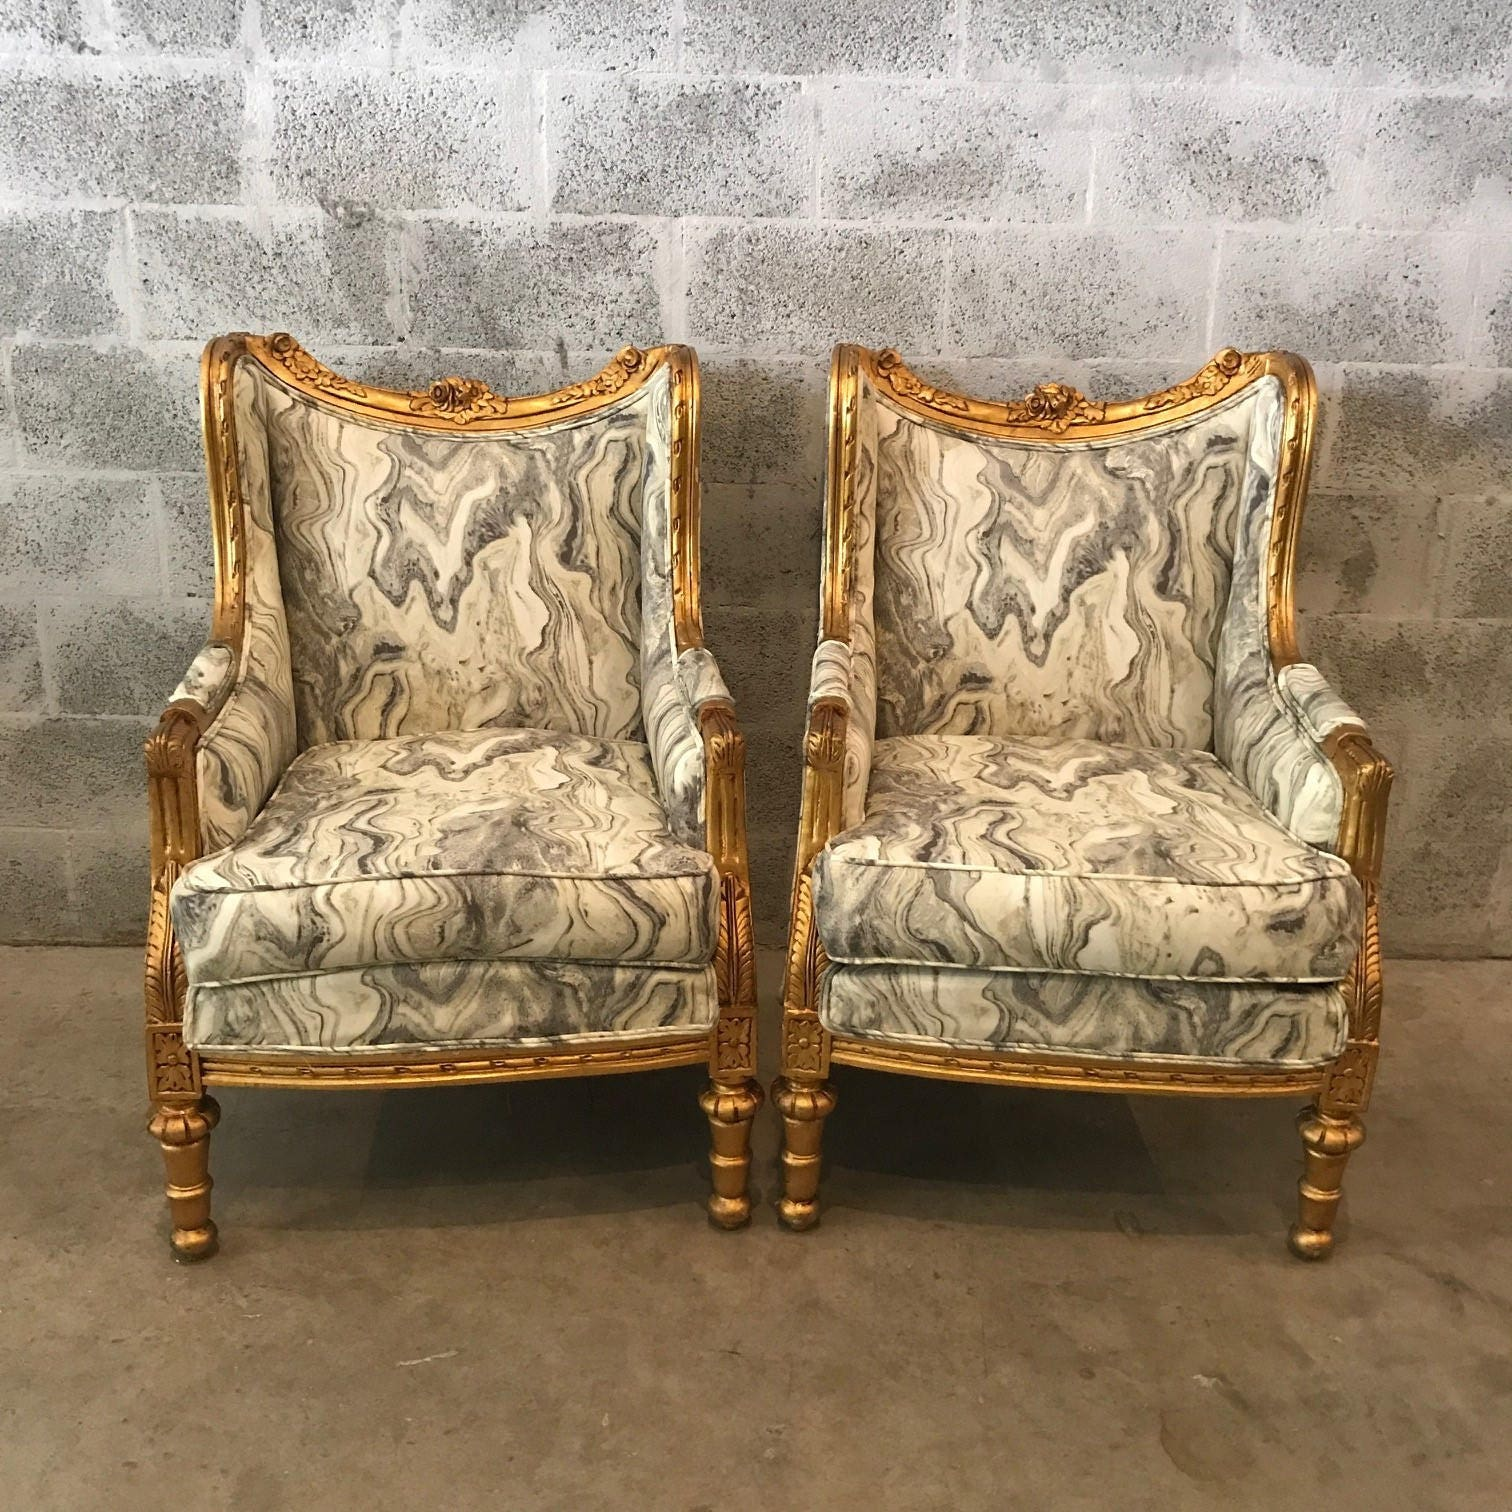 Antique bergere chair - Rococo Furniture Bergere Chair Marble Chair 2 Avail Original Gold Leaf Gild French Chair Louis Xvi French Furniture Antique Chair Baroque